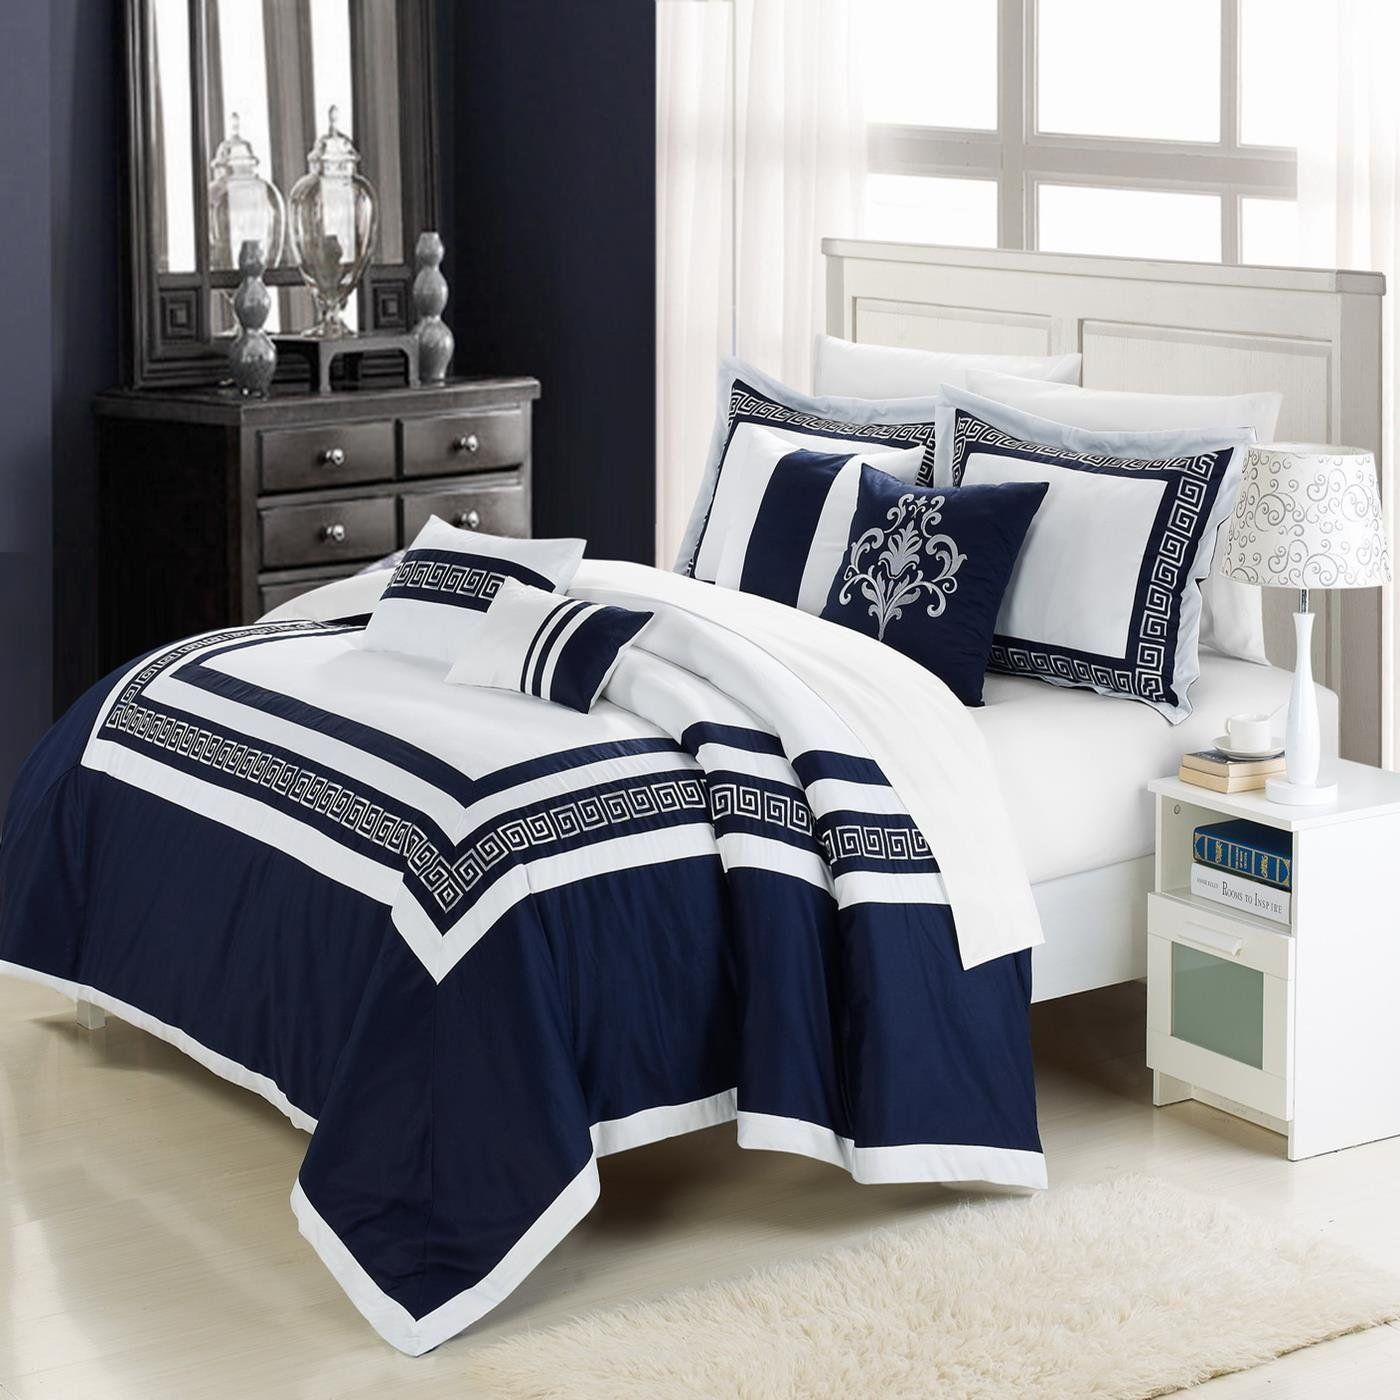 White Bedding With Blue Accent And Navy